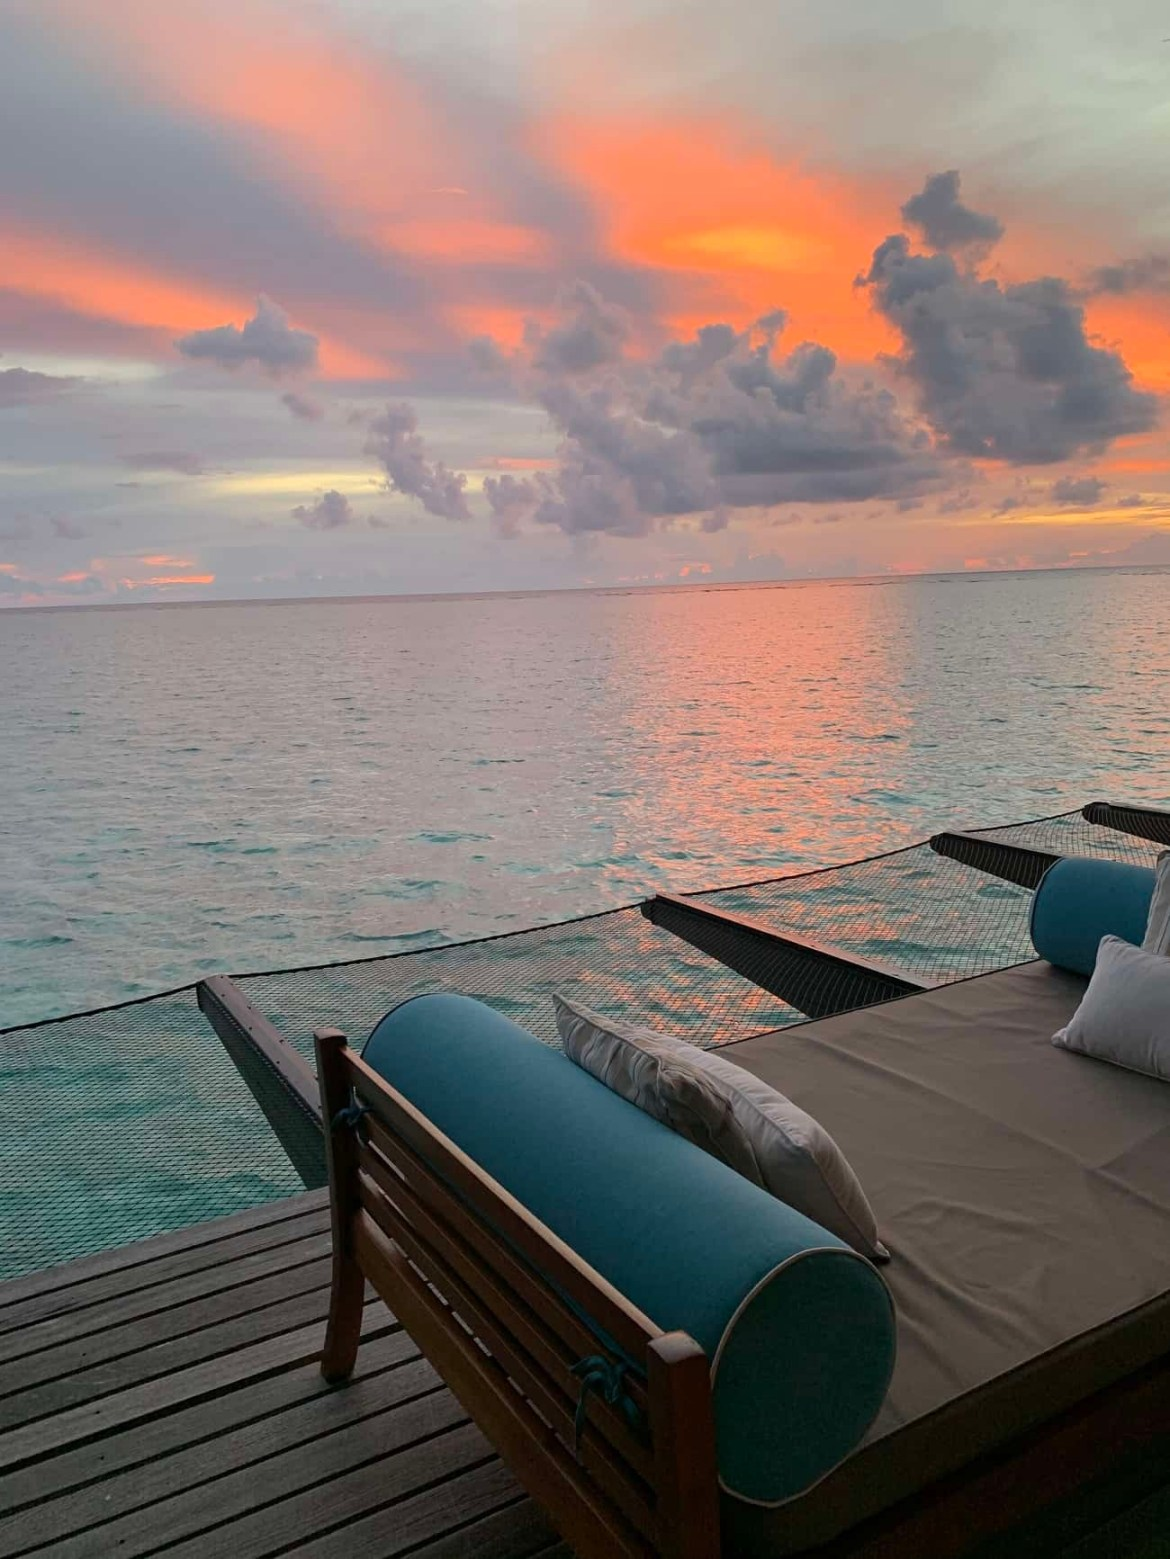 Sunset at Reethi Rah